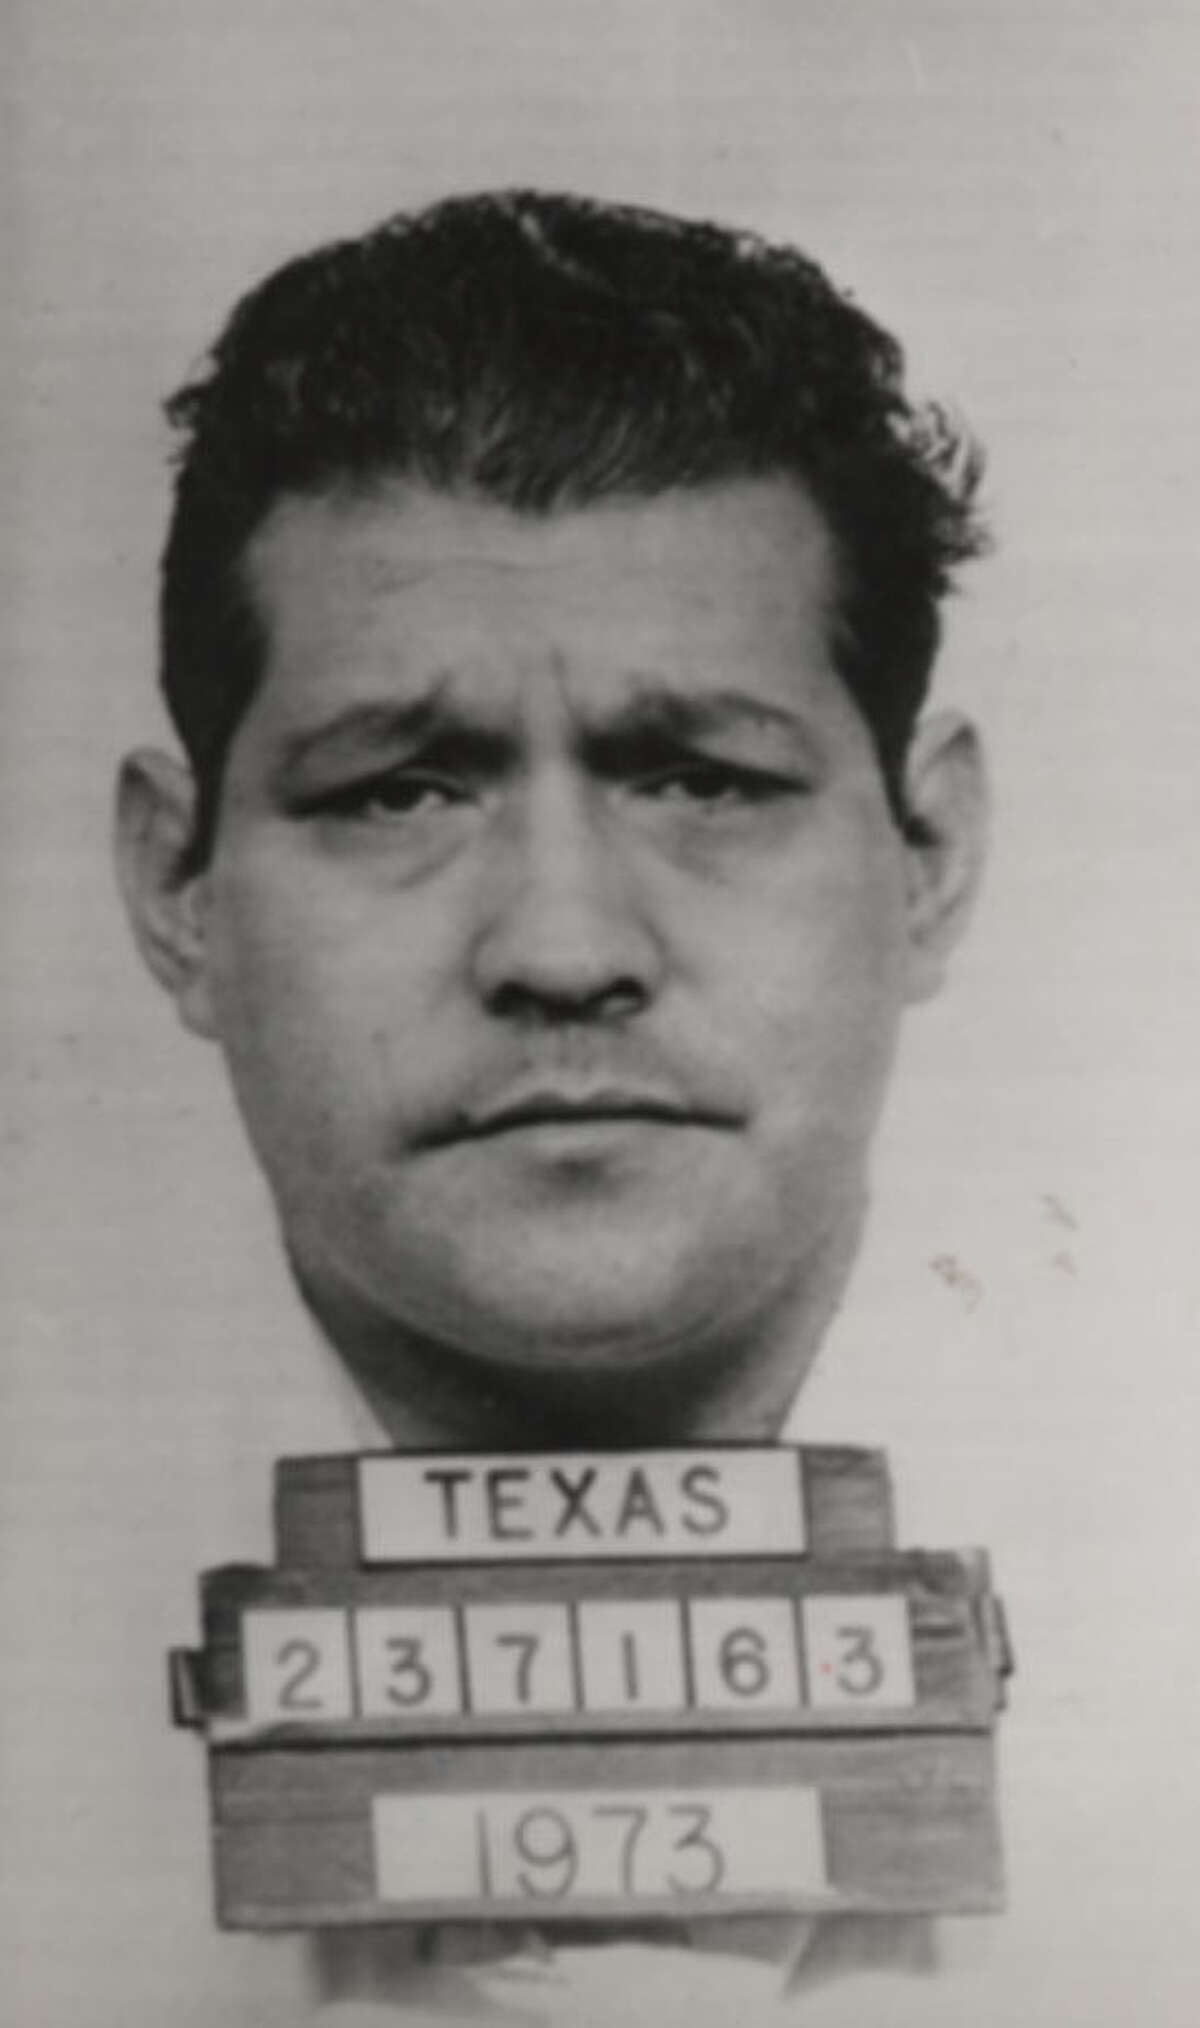 Fred Gomez Carrasco once led the biggest drug-trafficking ring in South Texas. He died in Huntsville in 1974, after he and his two other state prison inmates tried to escape with four hostages handcuffed to them. Carrasco had been sentenced to life for trying to kill a San Antonio policeman.